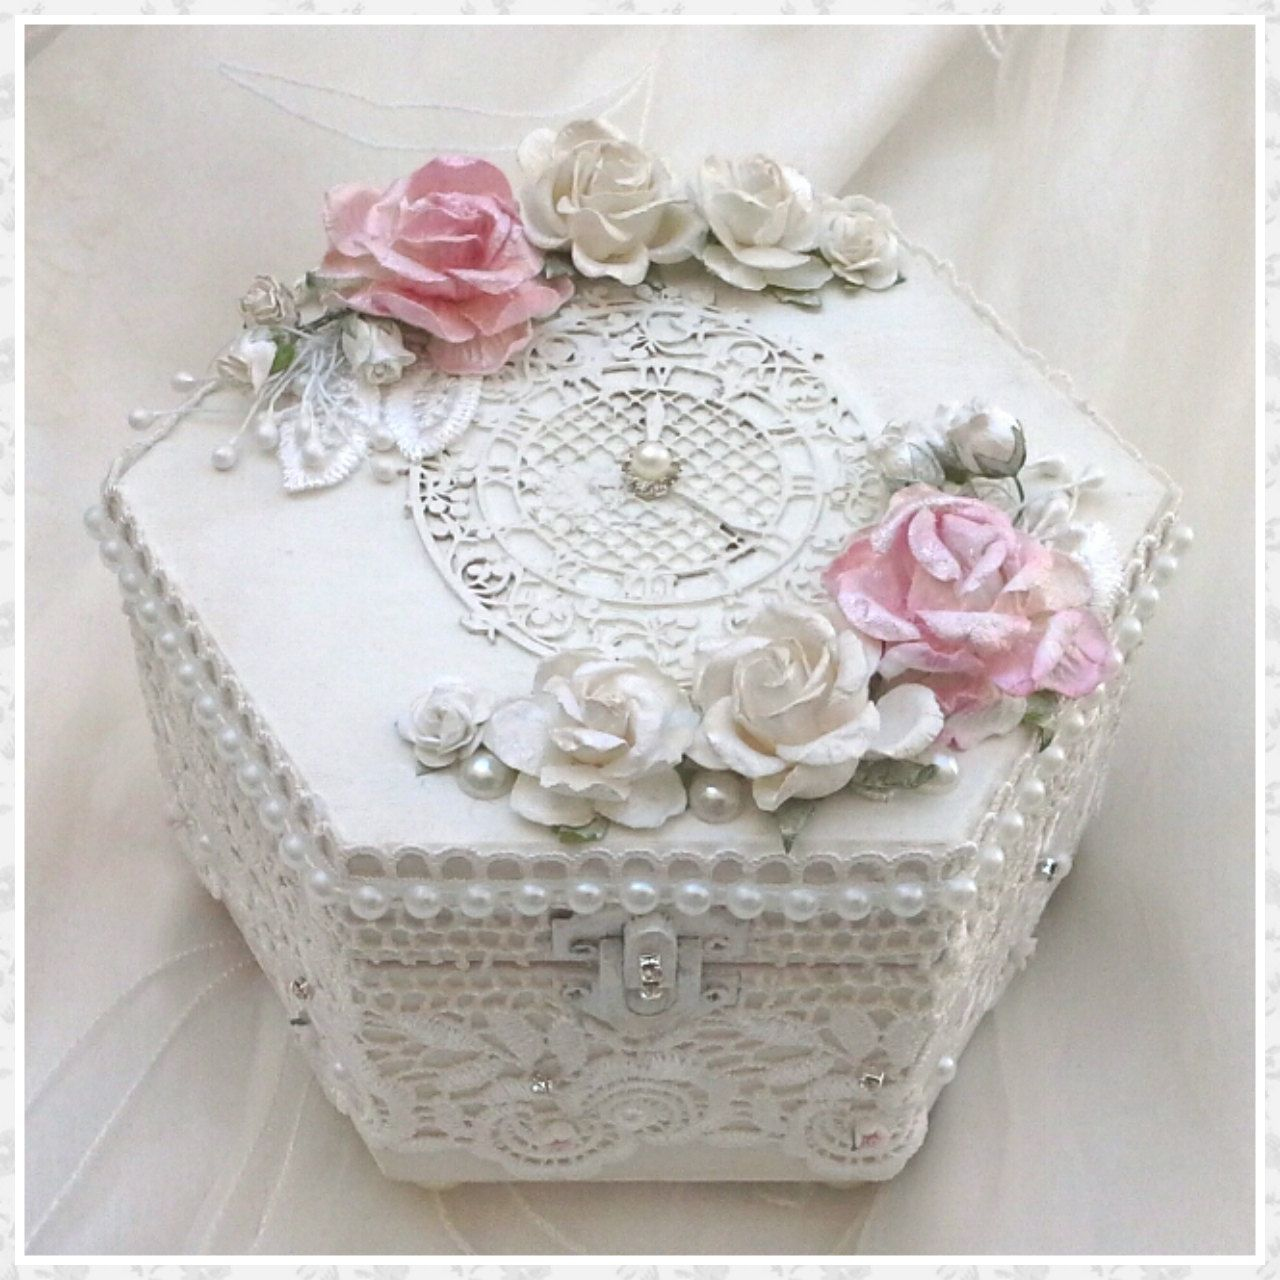 handmade jewellery box trinket box keepsake box wedding box shabby chic box memory box. Black Bedroom Furniture Sets. Home Design Ideas